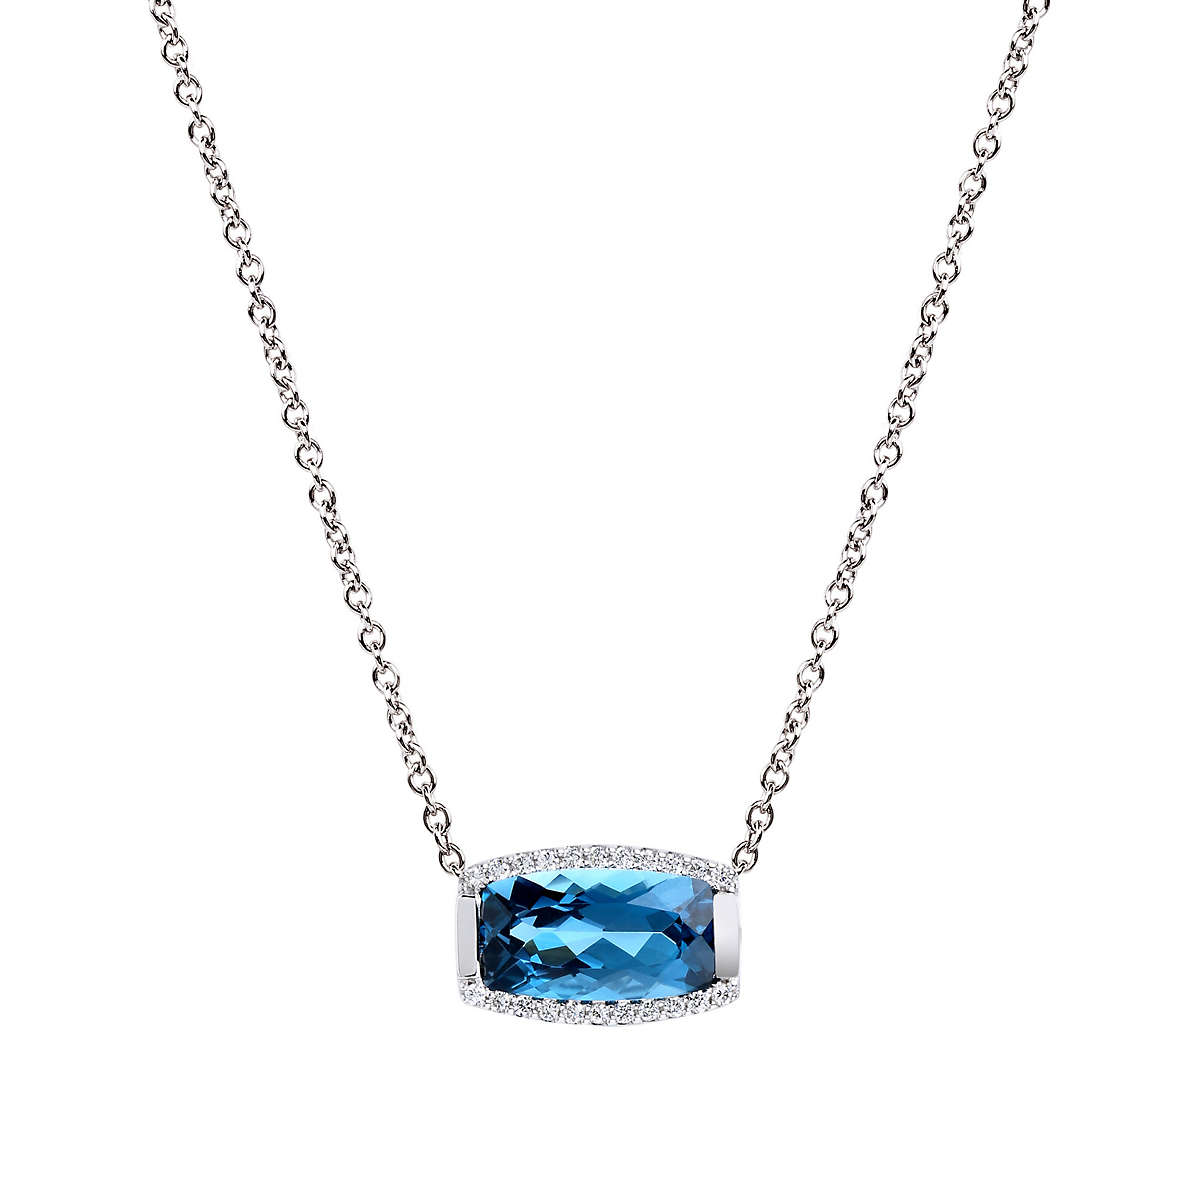 Jane Taylor London Blue Topaz & Pavé Diamond Tonneau Necklace